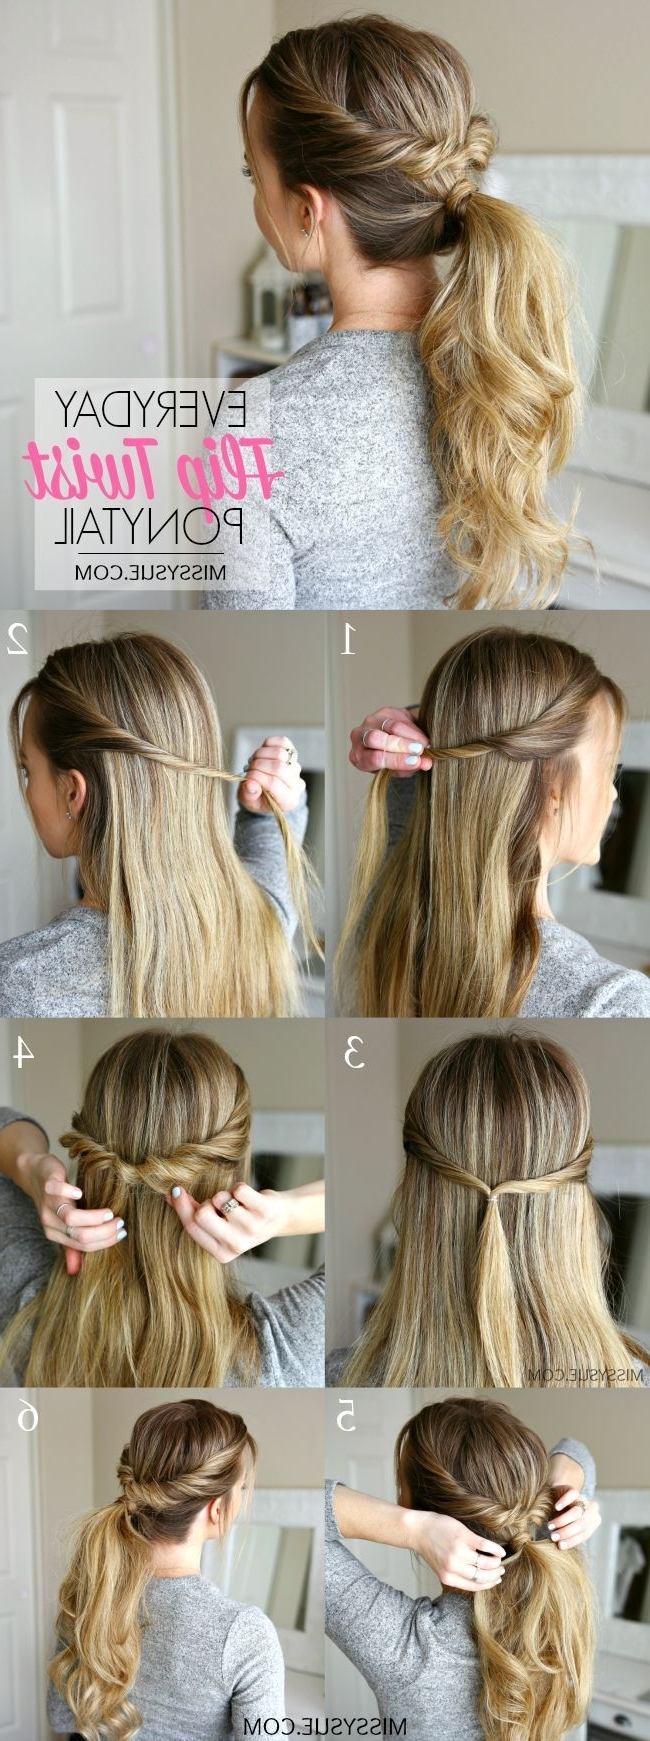 Healthy Hair Tips & Styles With Fashionable Twisted And Pinned Blonde Ponytails (View 11 of 20)